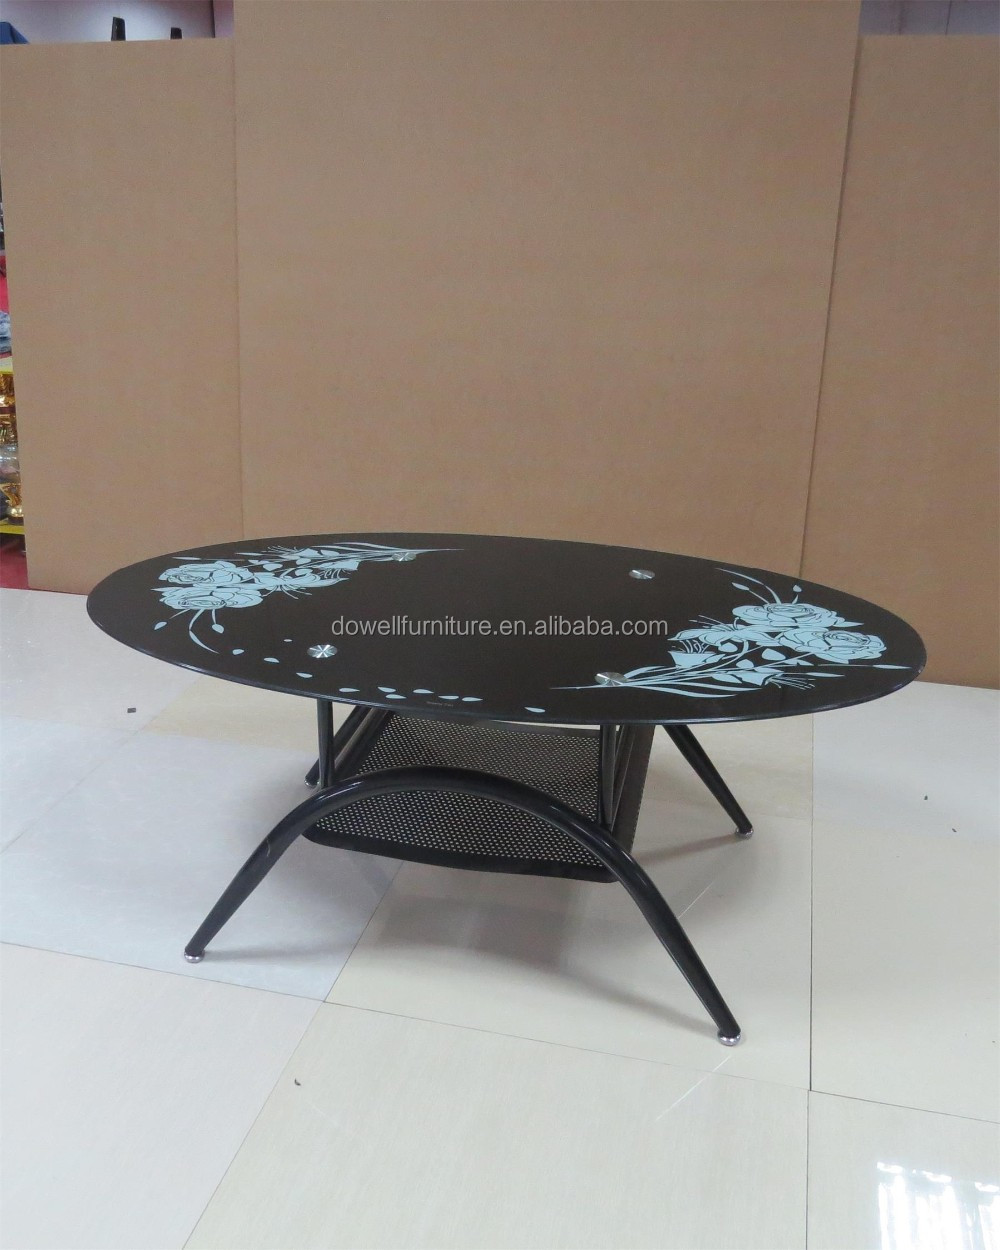 luxury glass coffee table luxury glass coffee table suppliers and at alibabacom